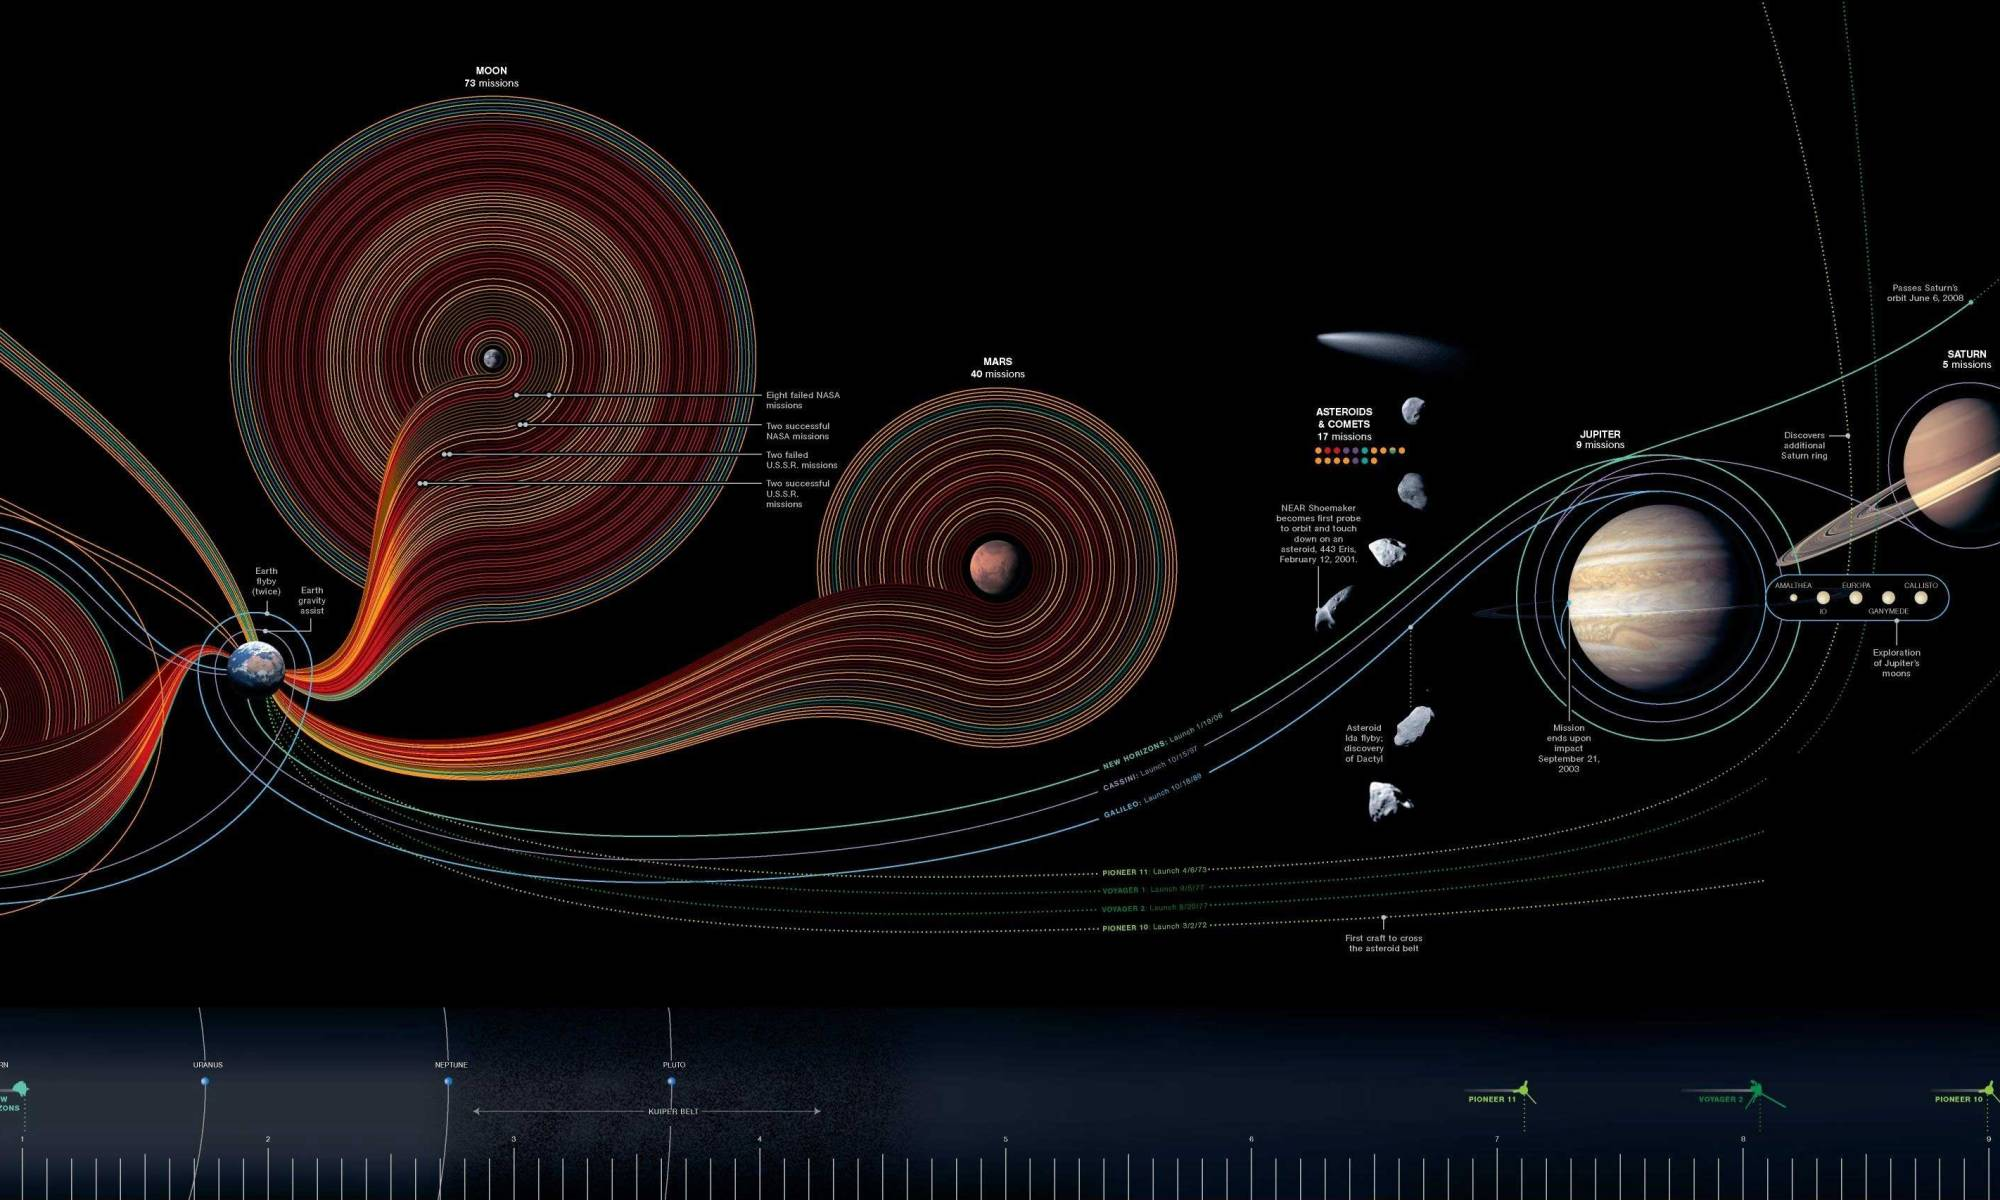 A National Geographic infographic outlining human exploration of the solar system.